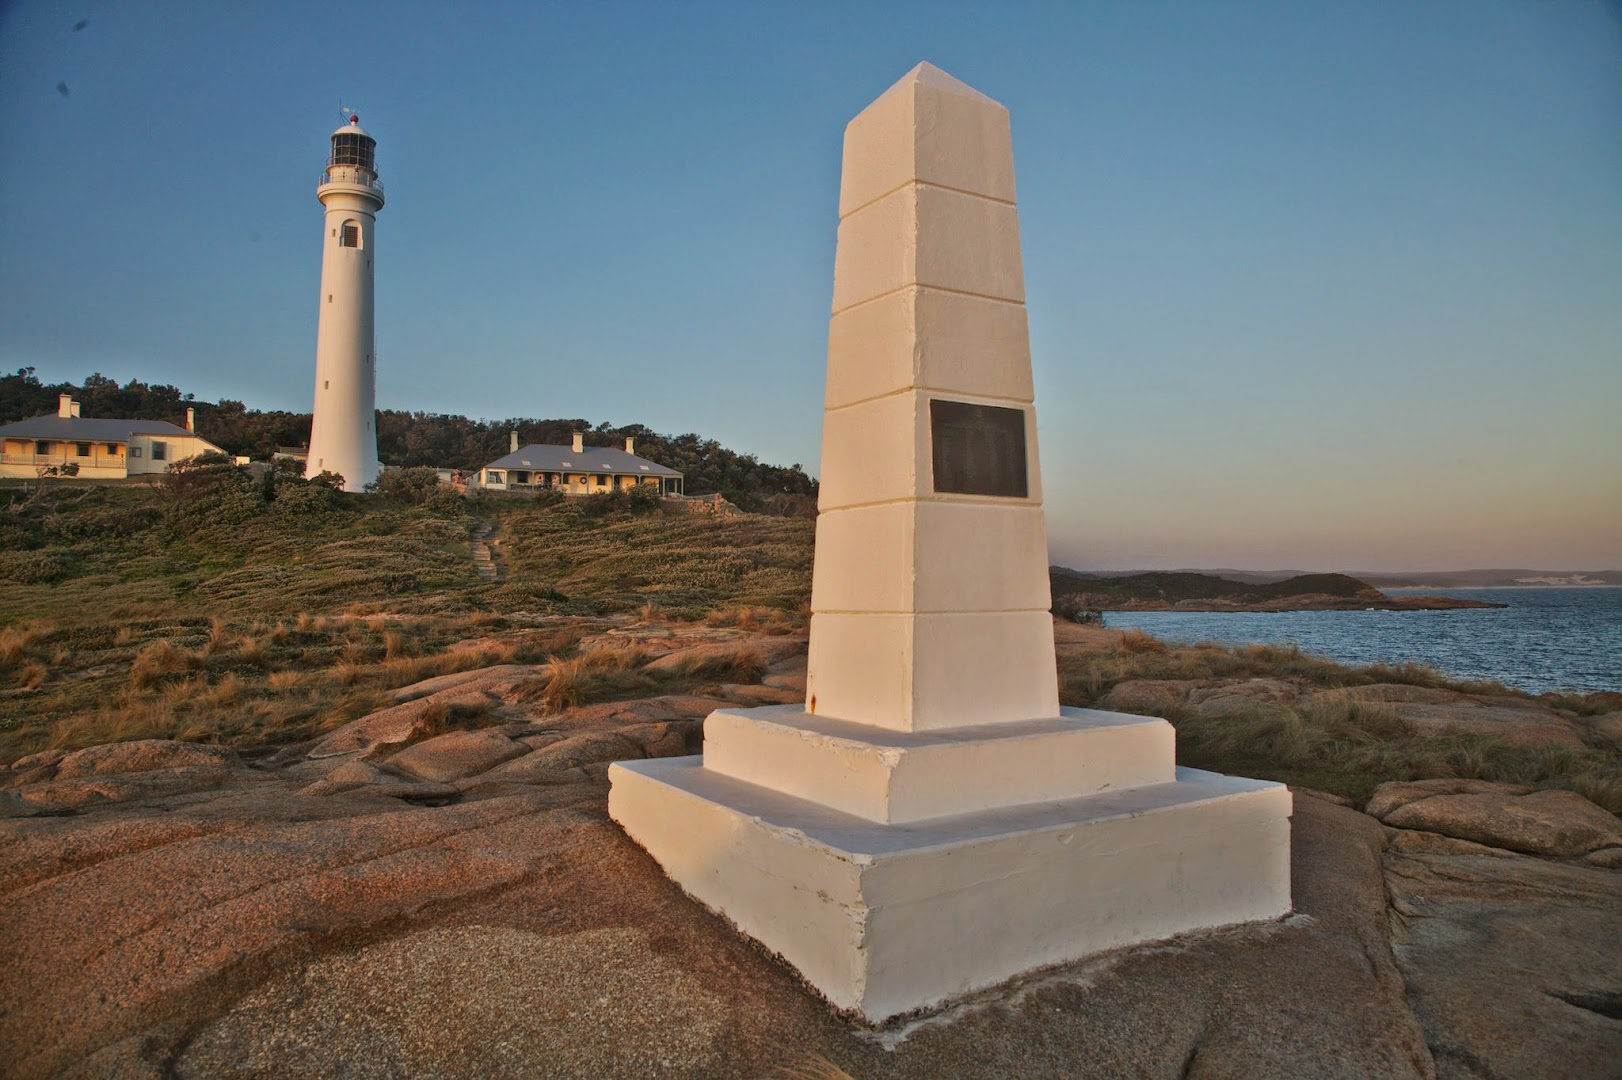 This is the cape that James Cook first saw when searching for a new continent